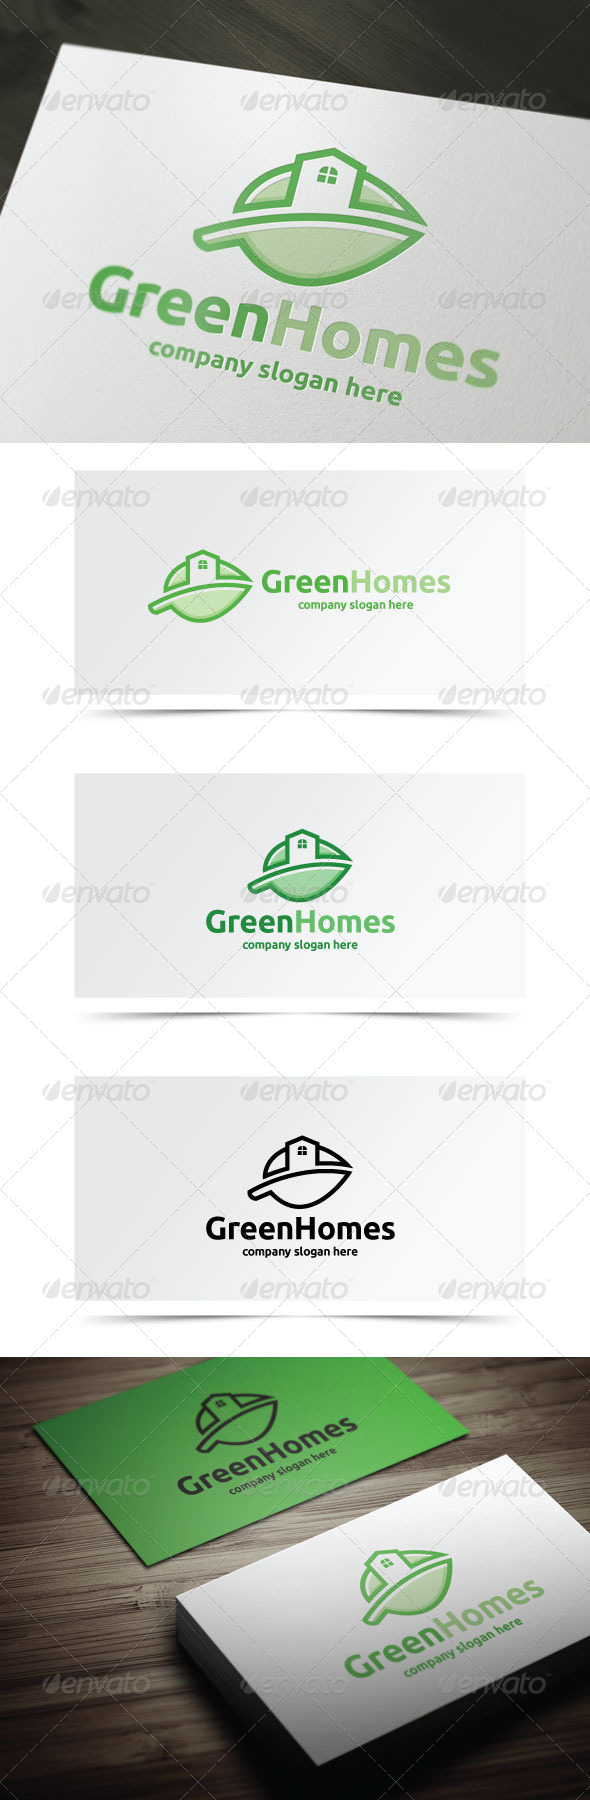 GraphicRiver Green Homes 8197102